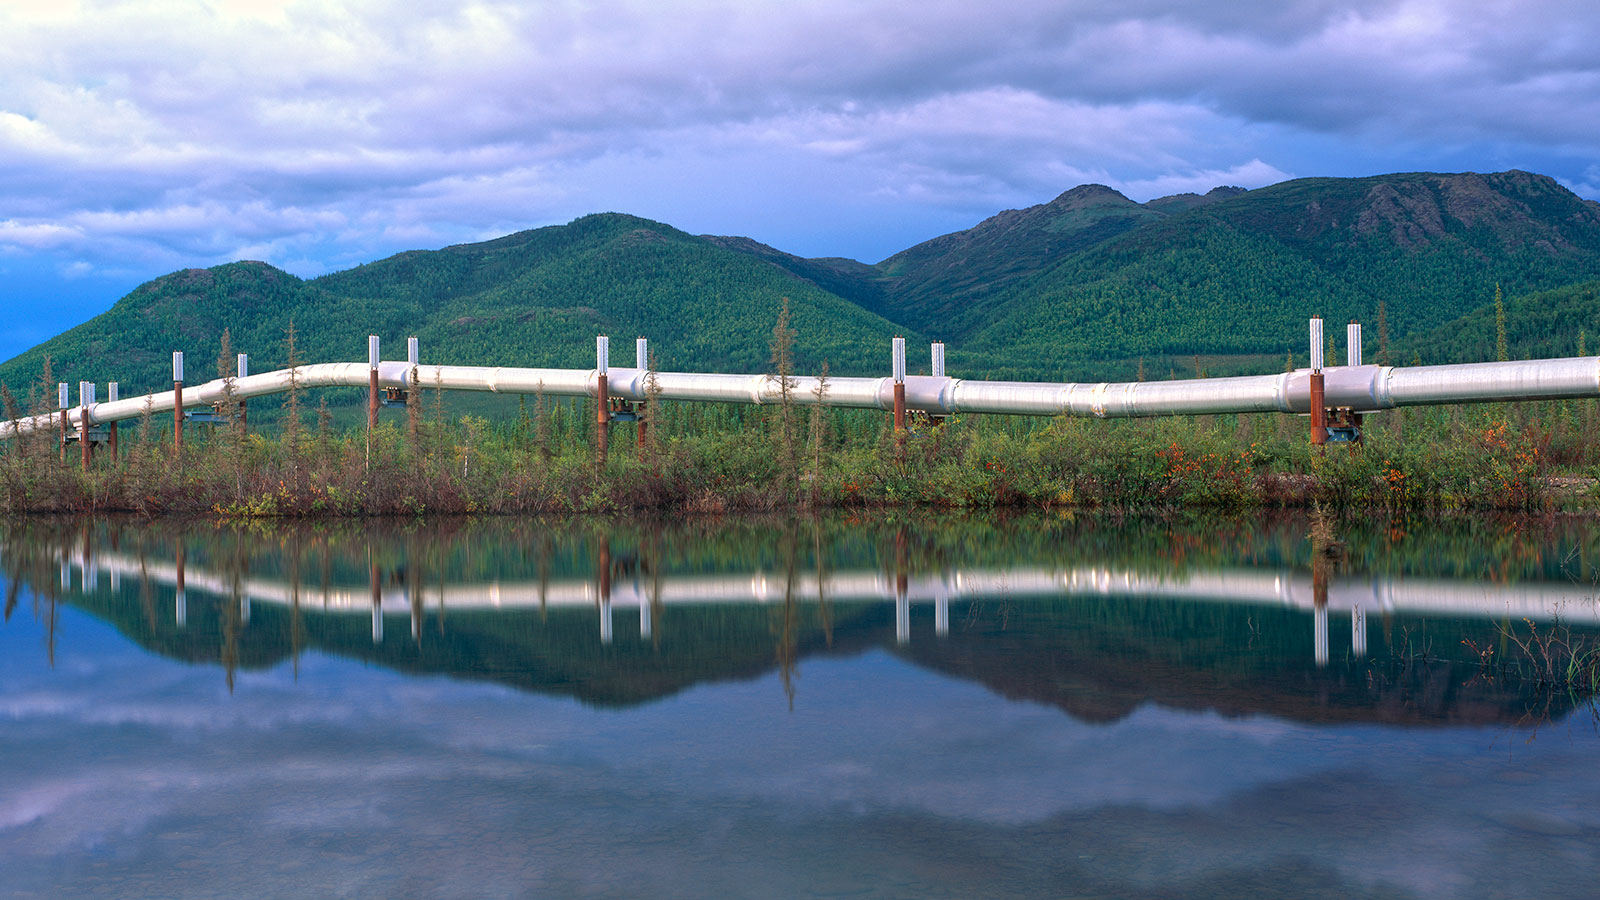 Trans-Alaska pipeline reflected in a pond